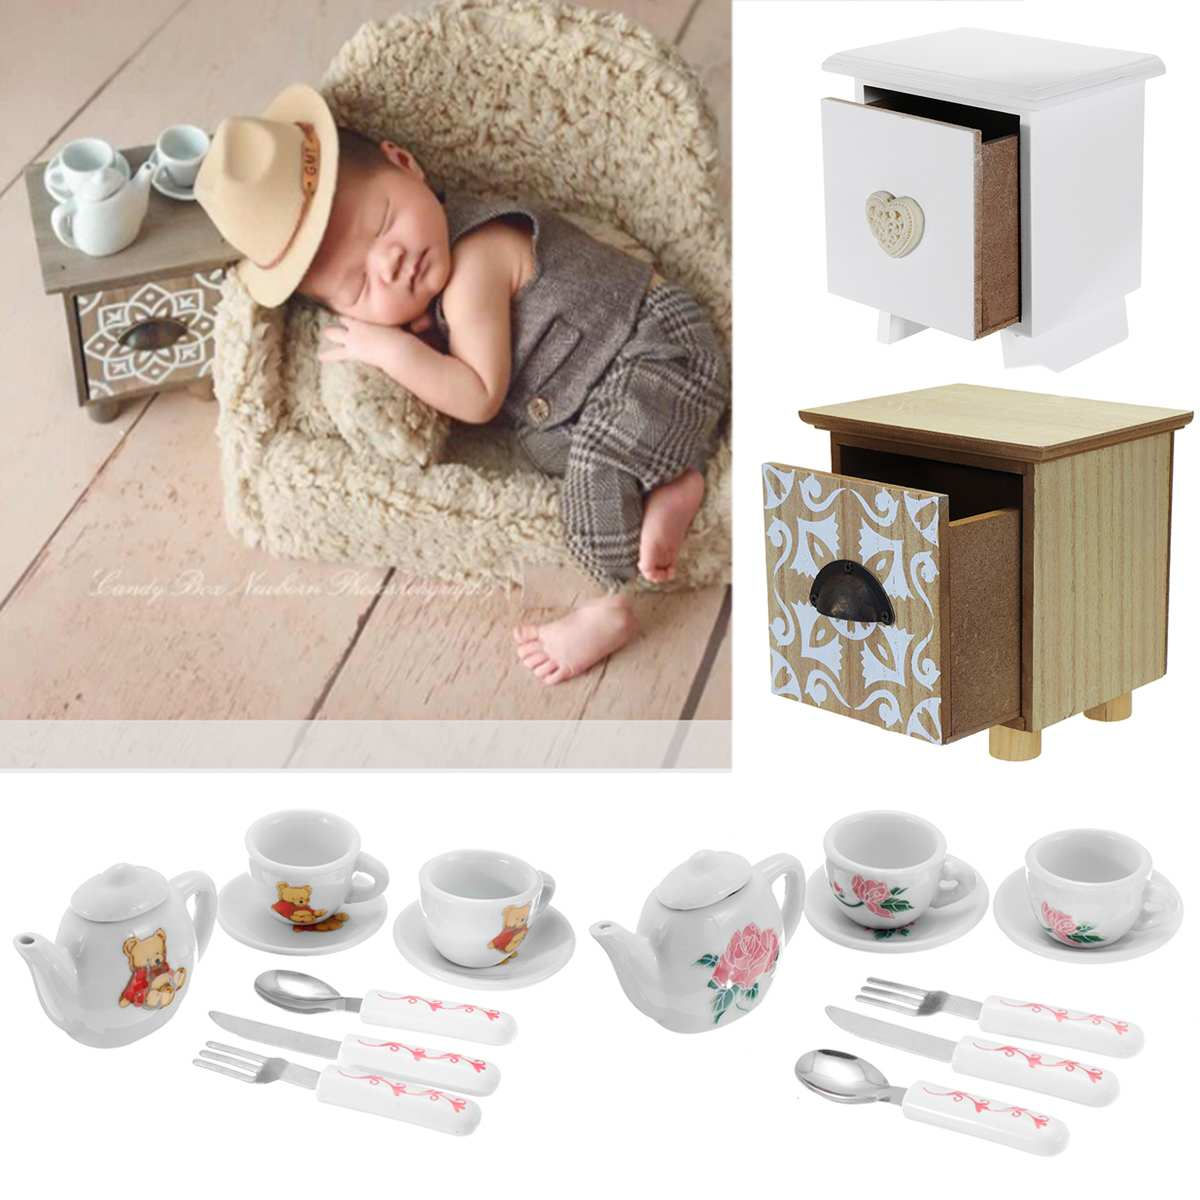 2019 New Style Retro Resin Mini Small Decoration Creative Picture Shooting Ideas Newborn Baby Photography Props Studio Accessories Hot Sale Furniture Toys Pretend Play